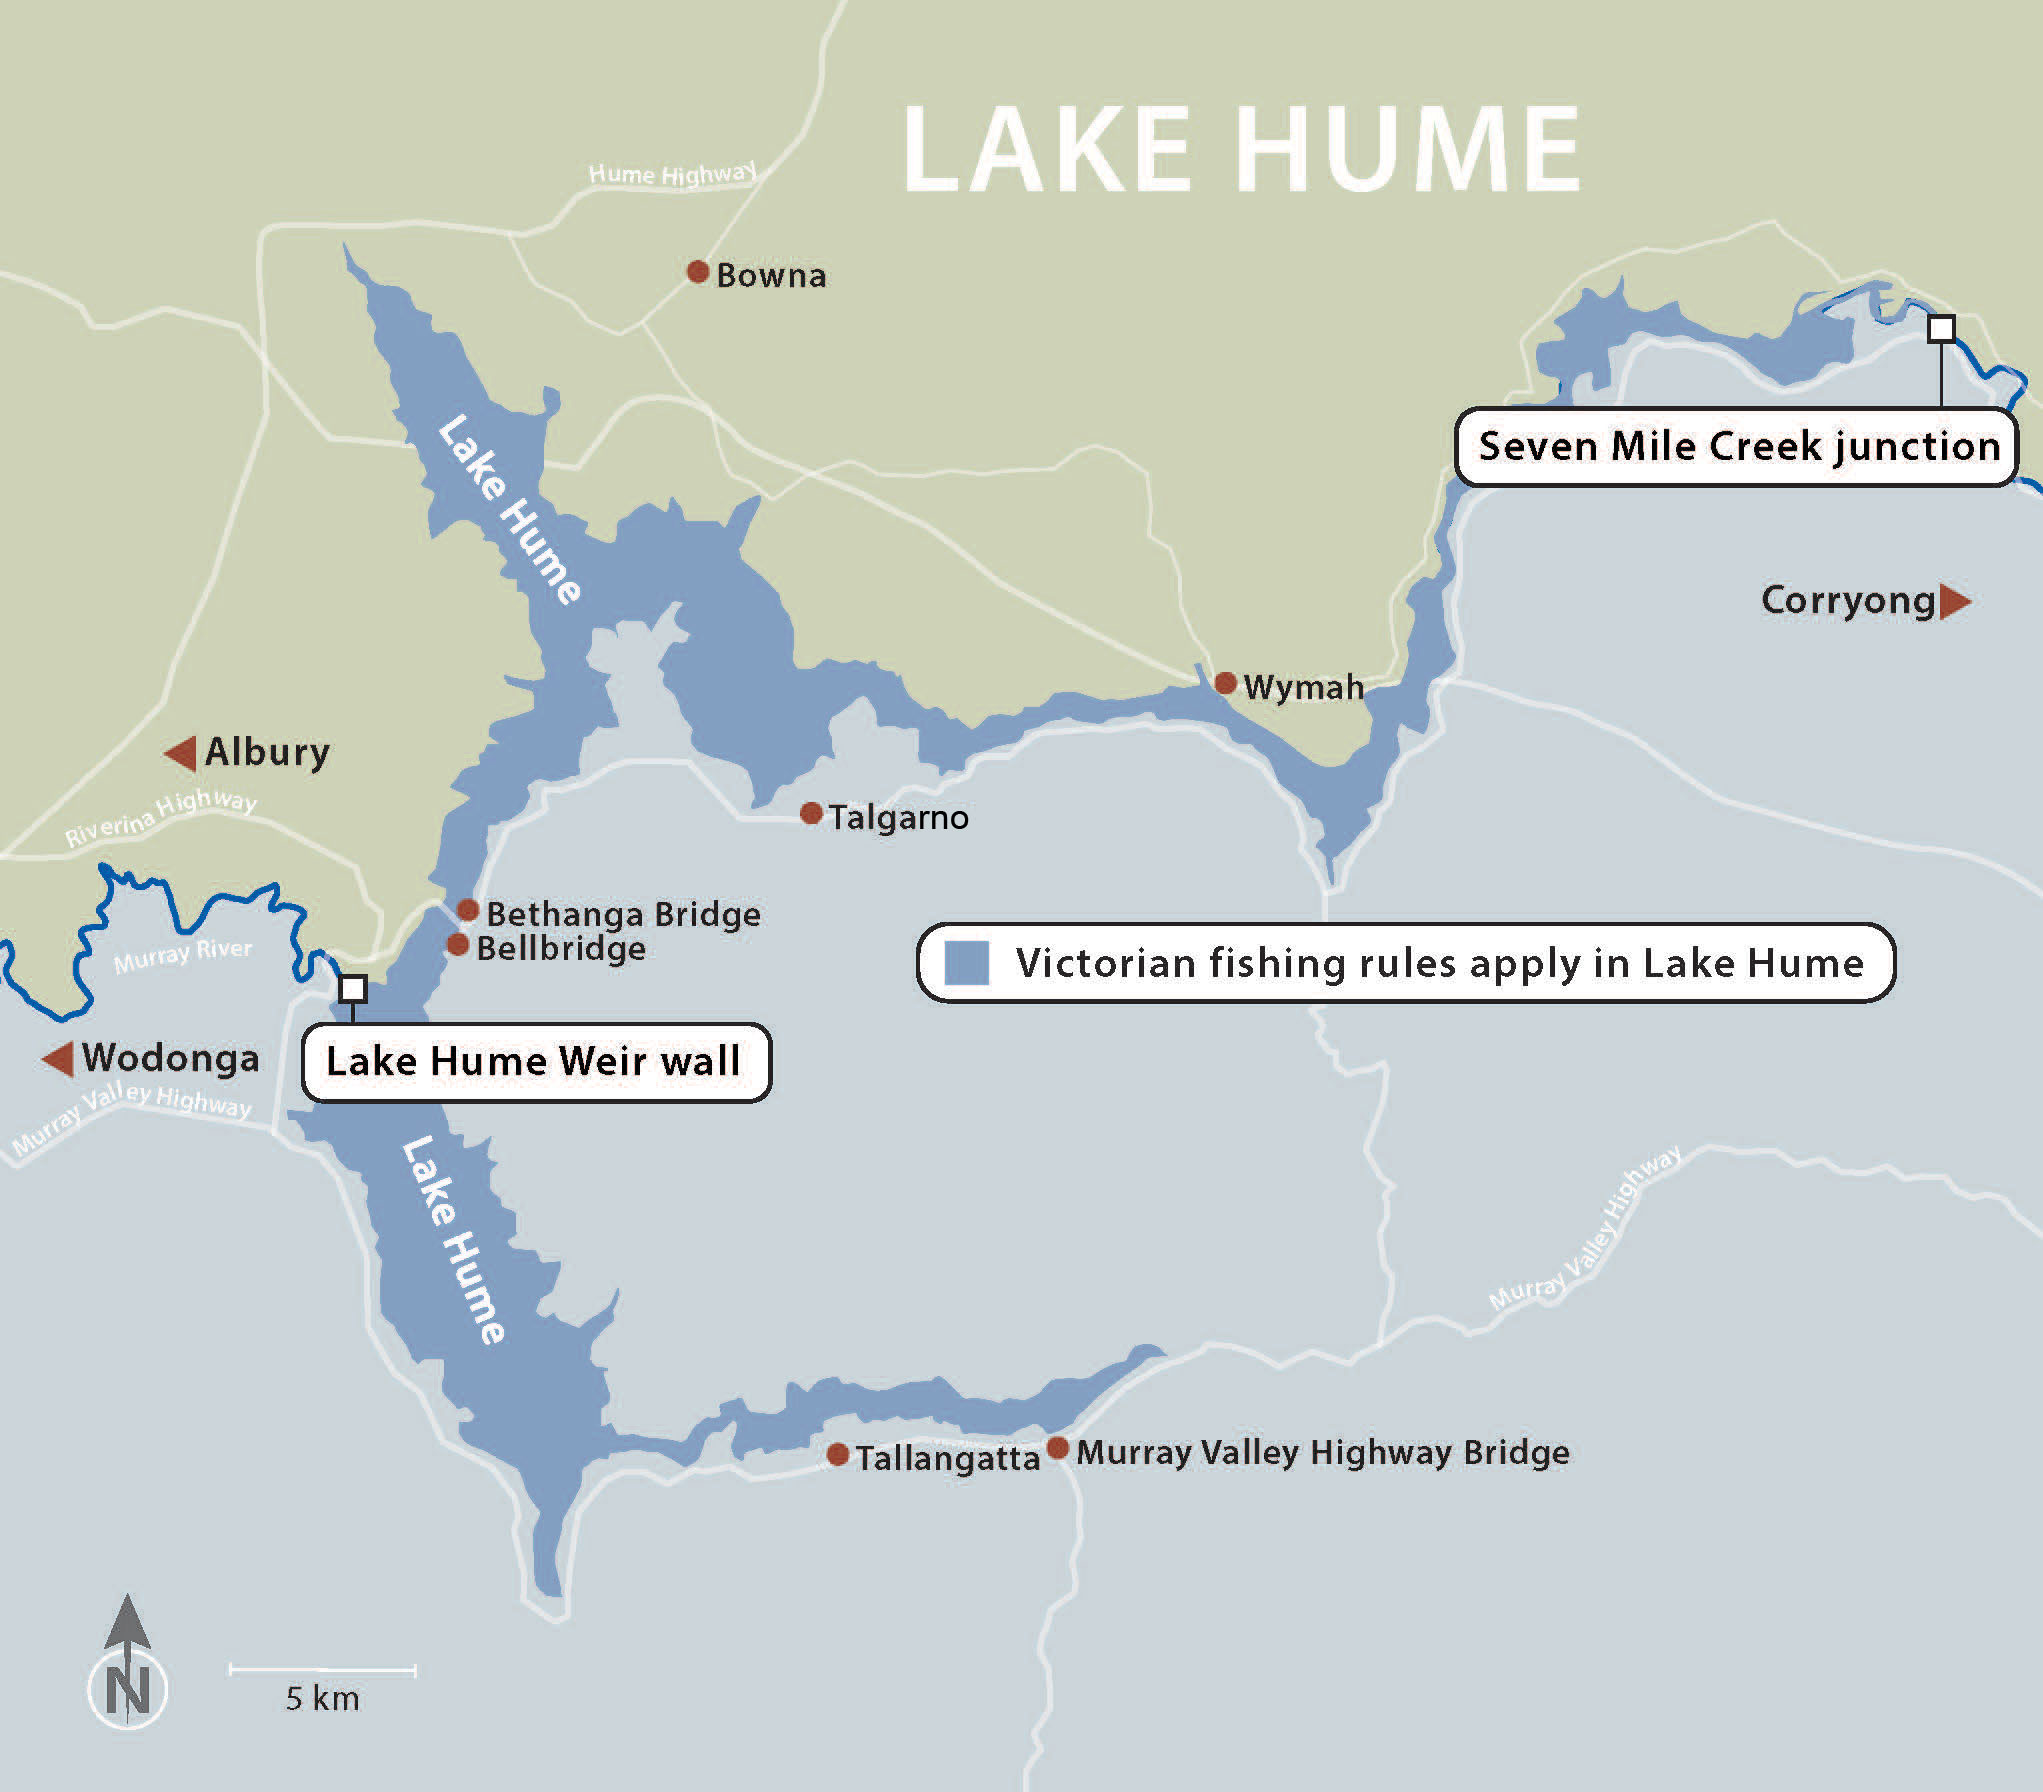 Map showing the location of Lake Hume